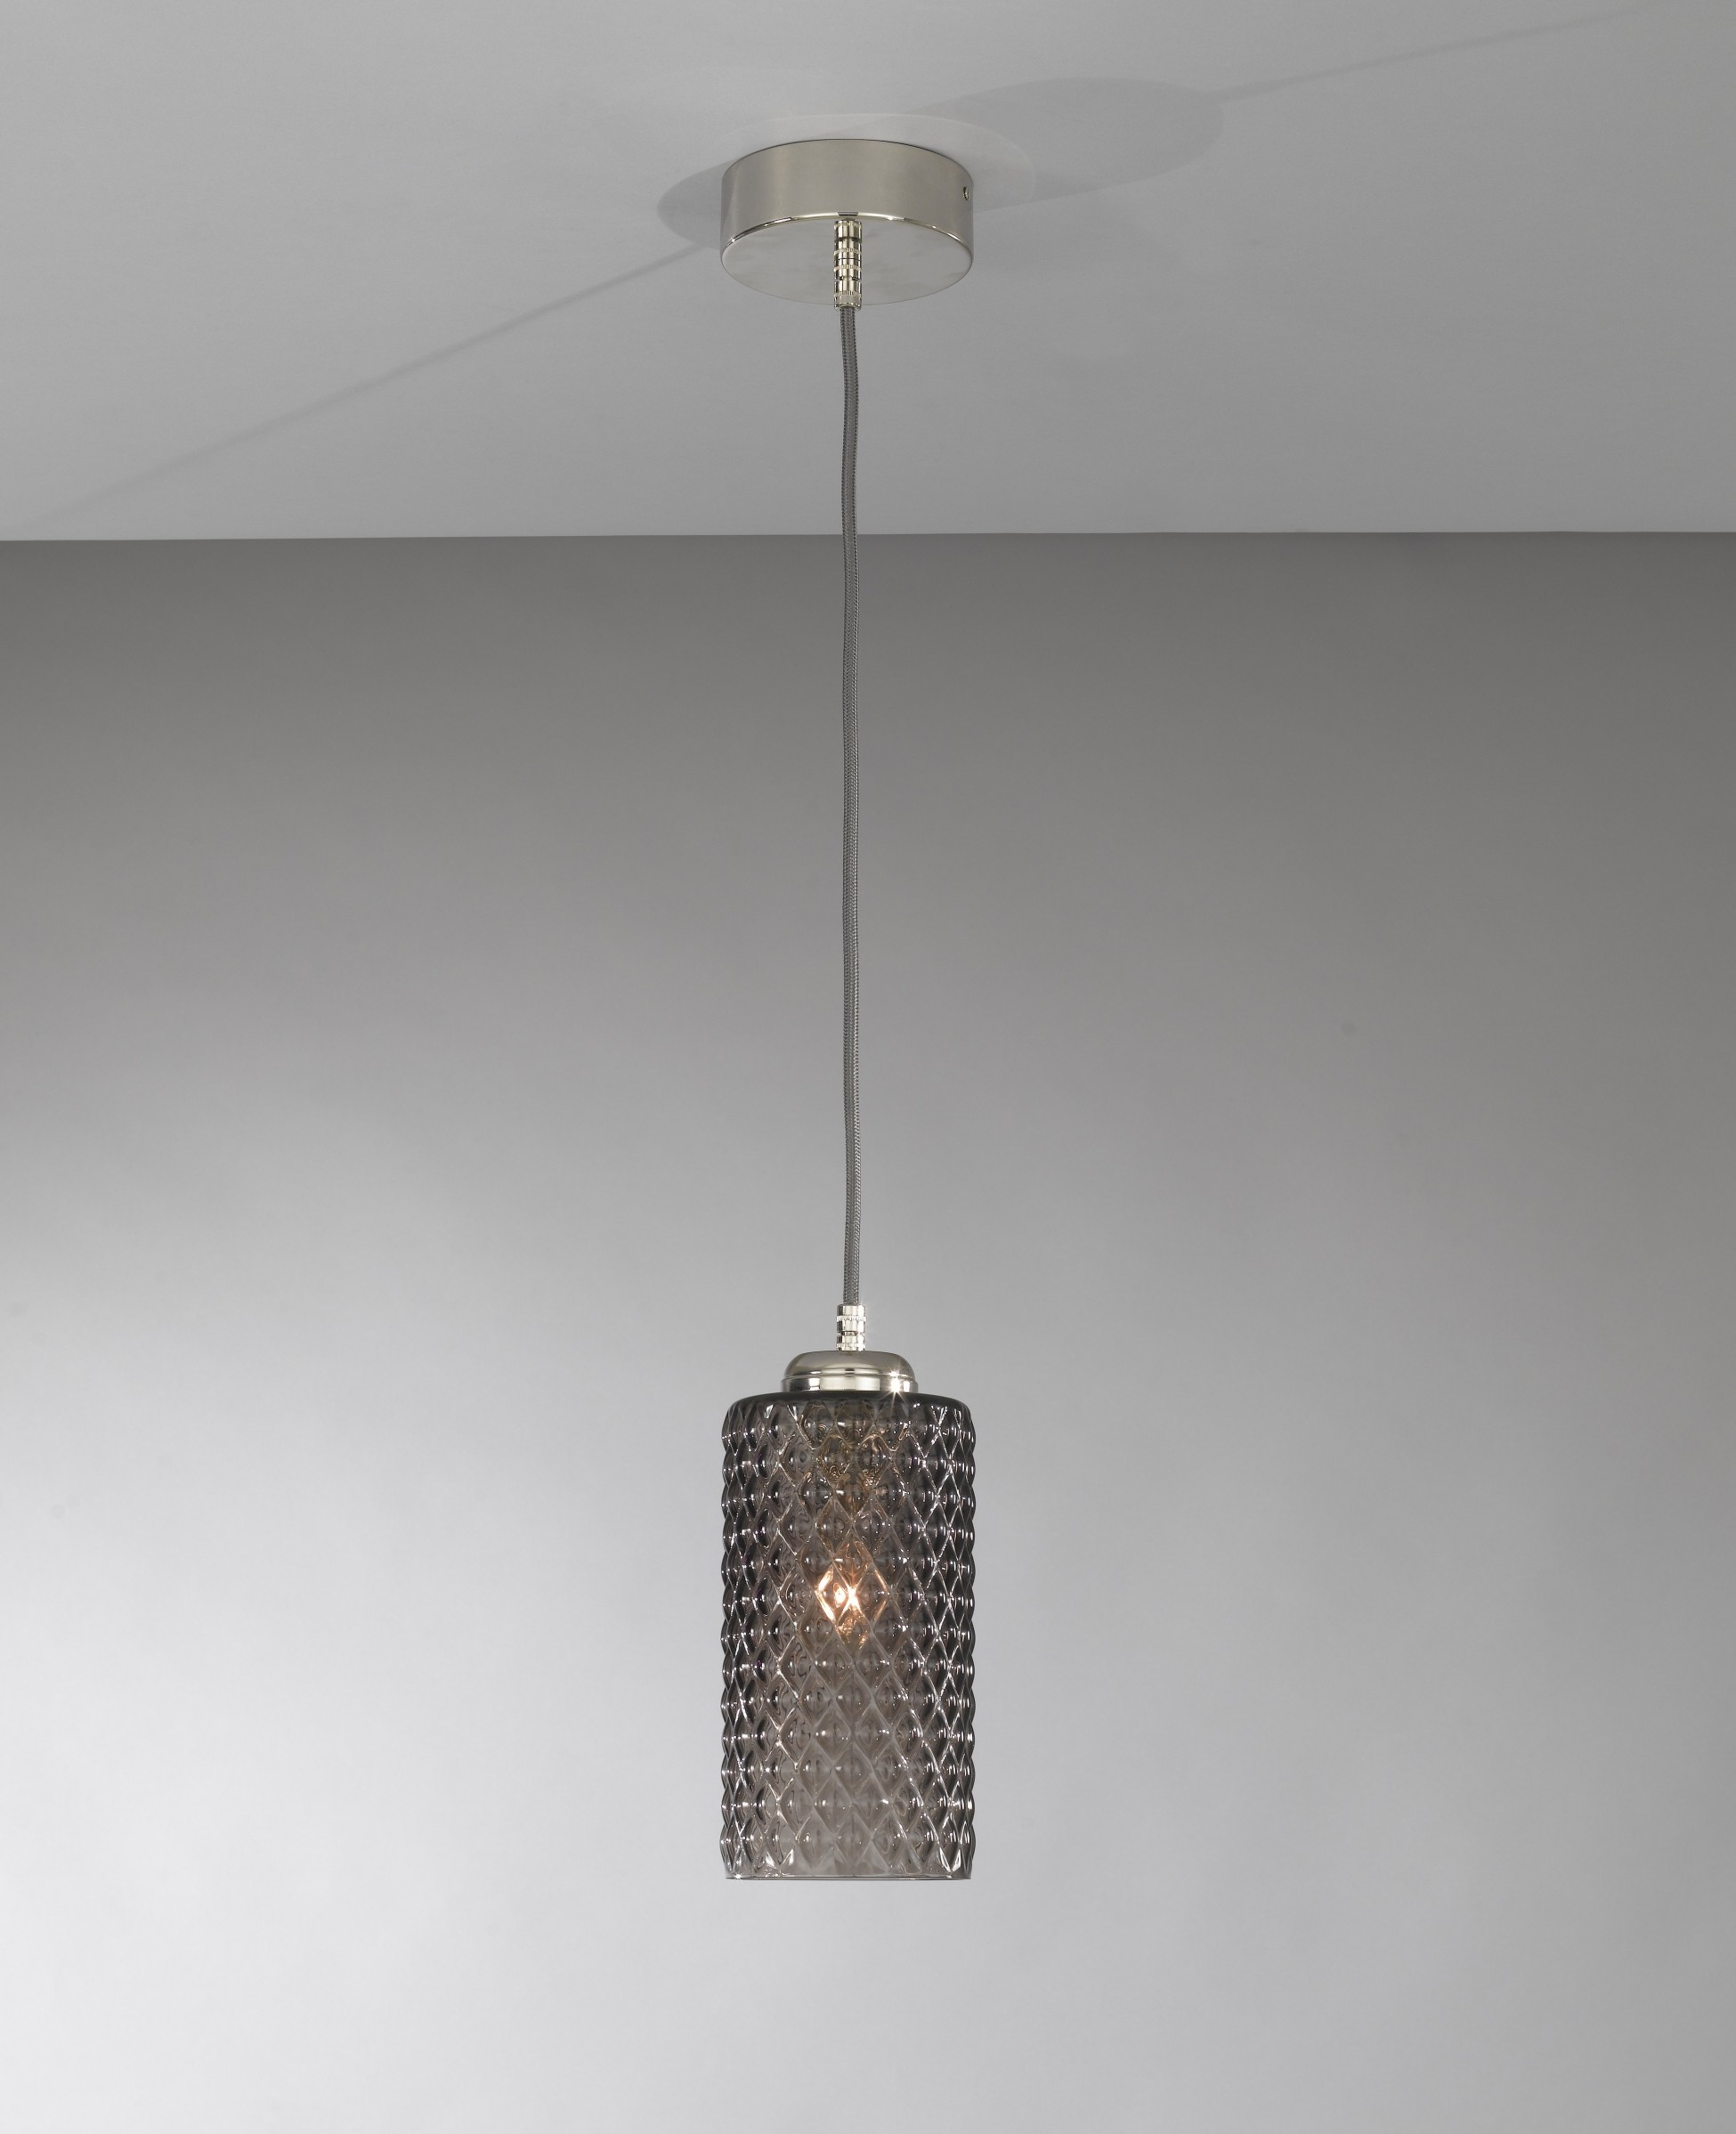 Smoked Lamp Glass With One Suspension FinishBlown Color L 100001 LightNickel In CxeQWEBdro